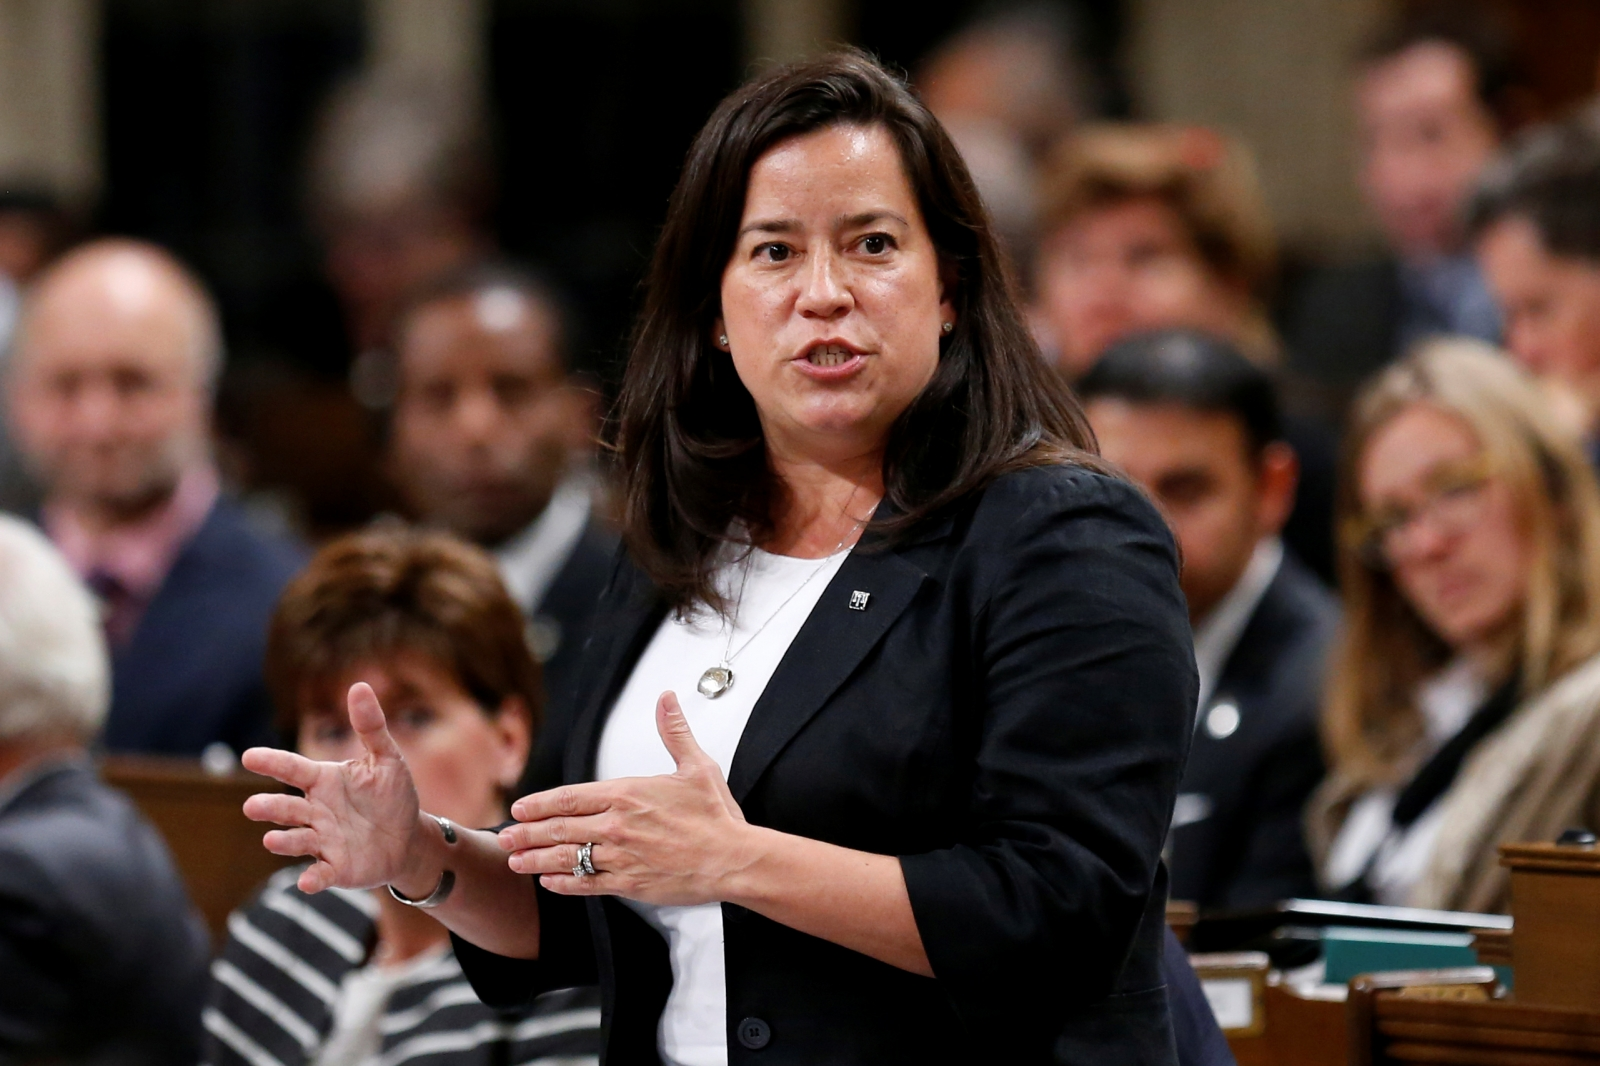 Canada Justice Minister Jody Wilson-Raybould